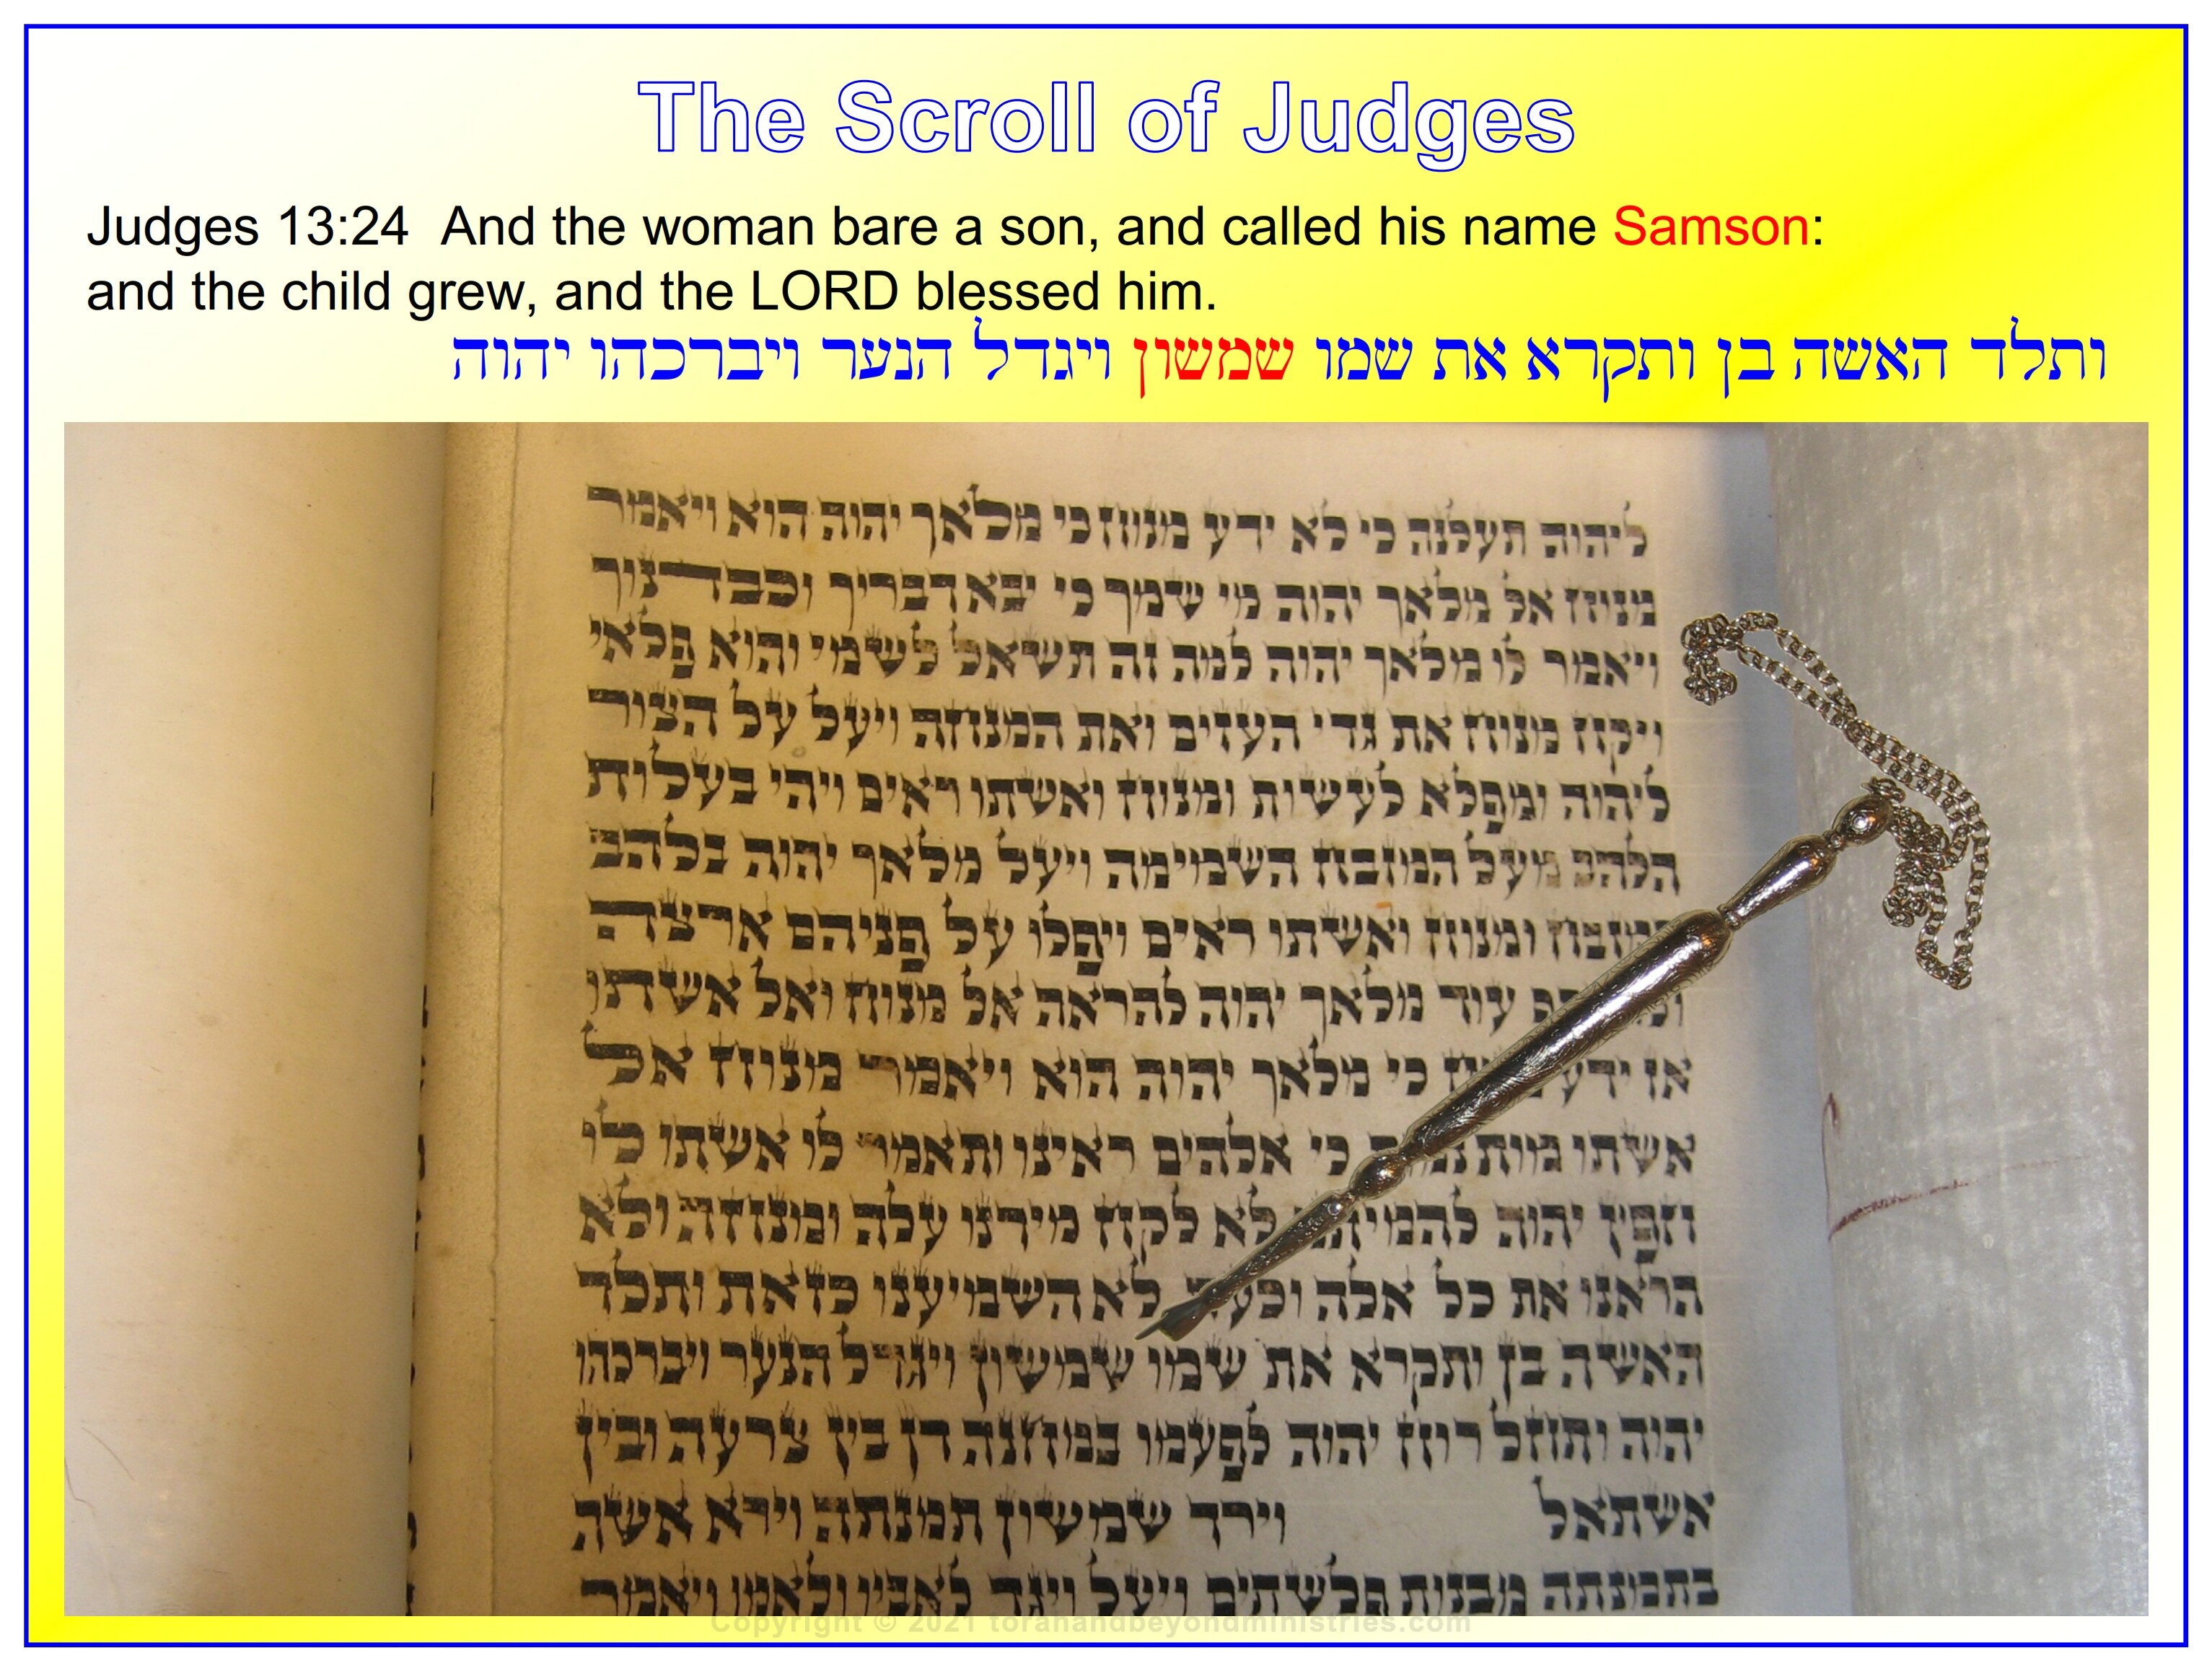 Hebrew Scroll of Judges written before the 20th century